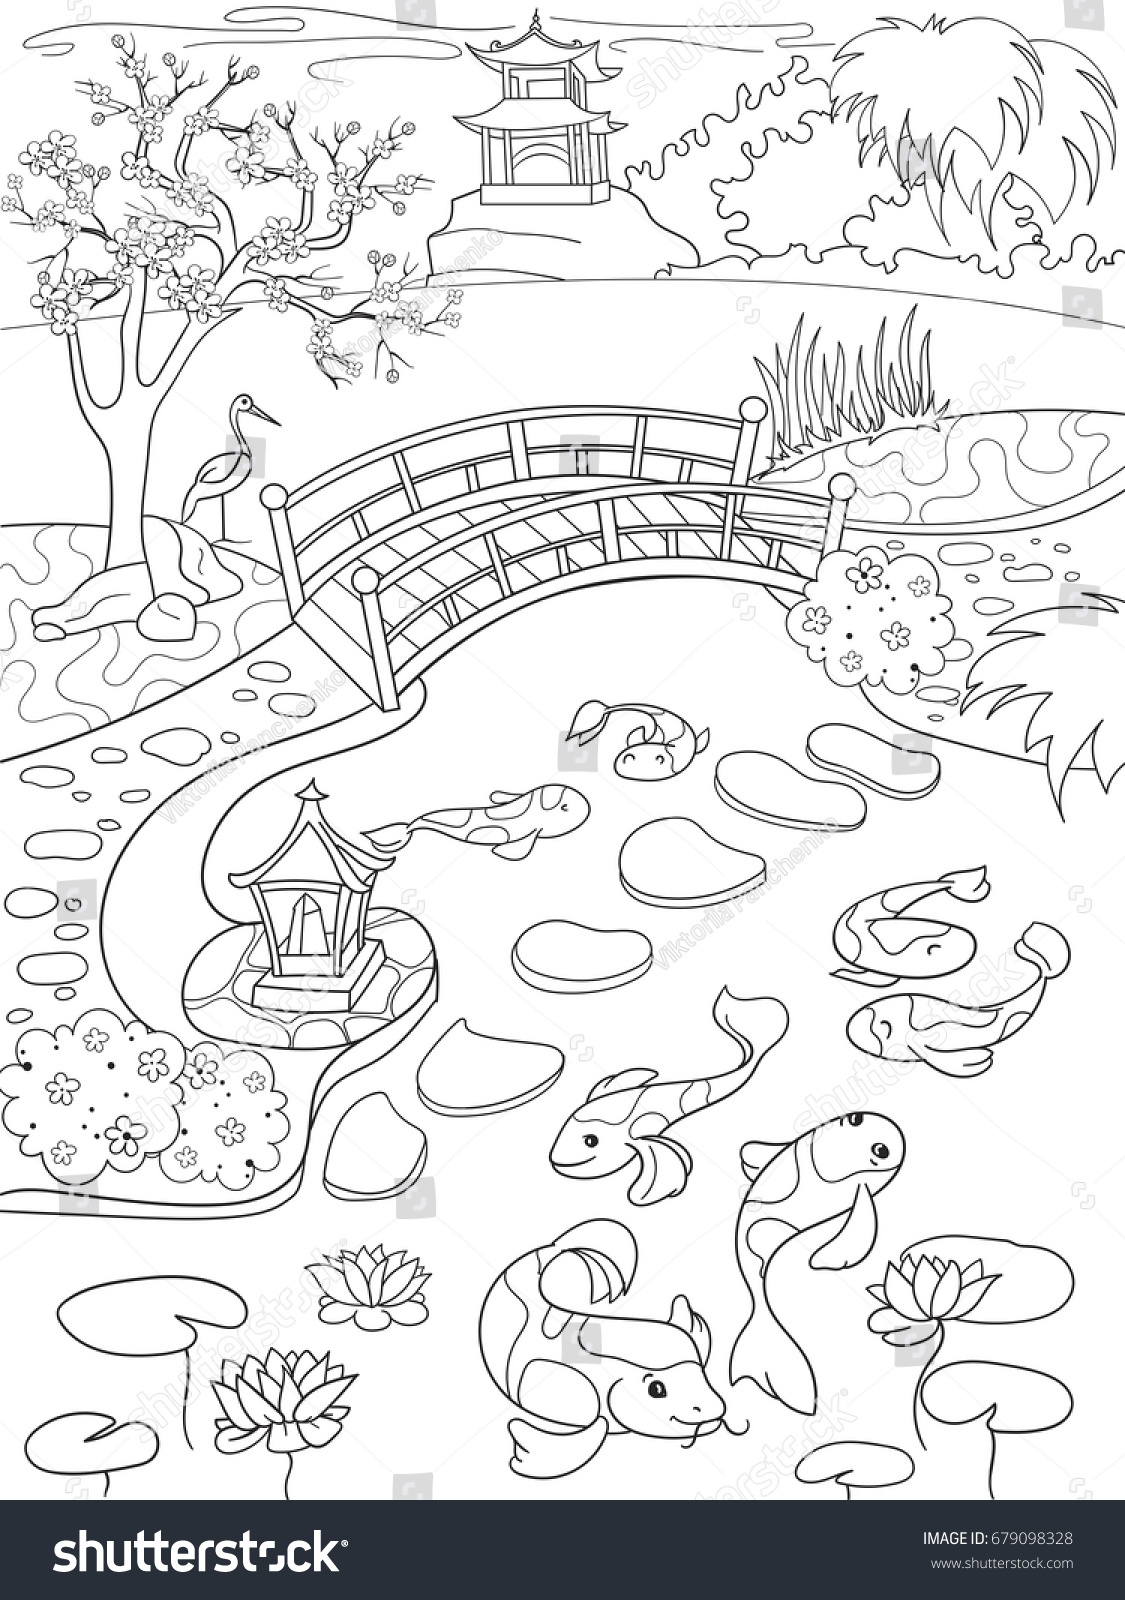 Nature Of Japan Coloring Book For Children Cartoon Japanese Garden Raster Illustration Zentangle Style